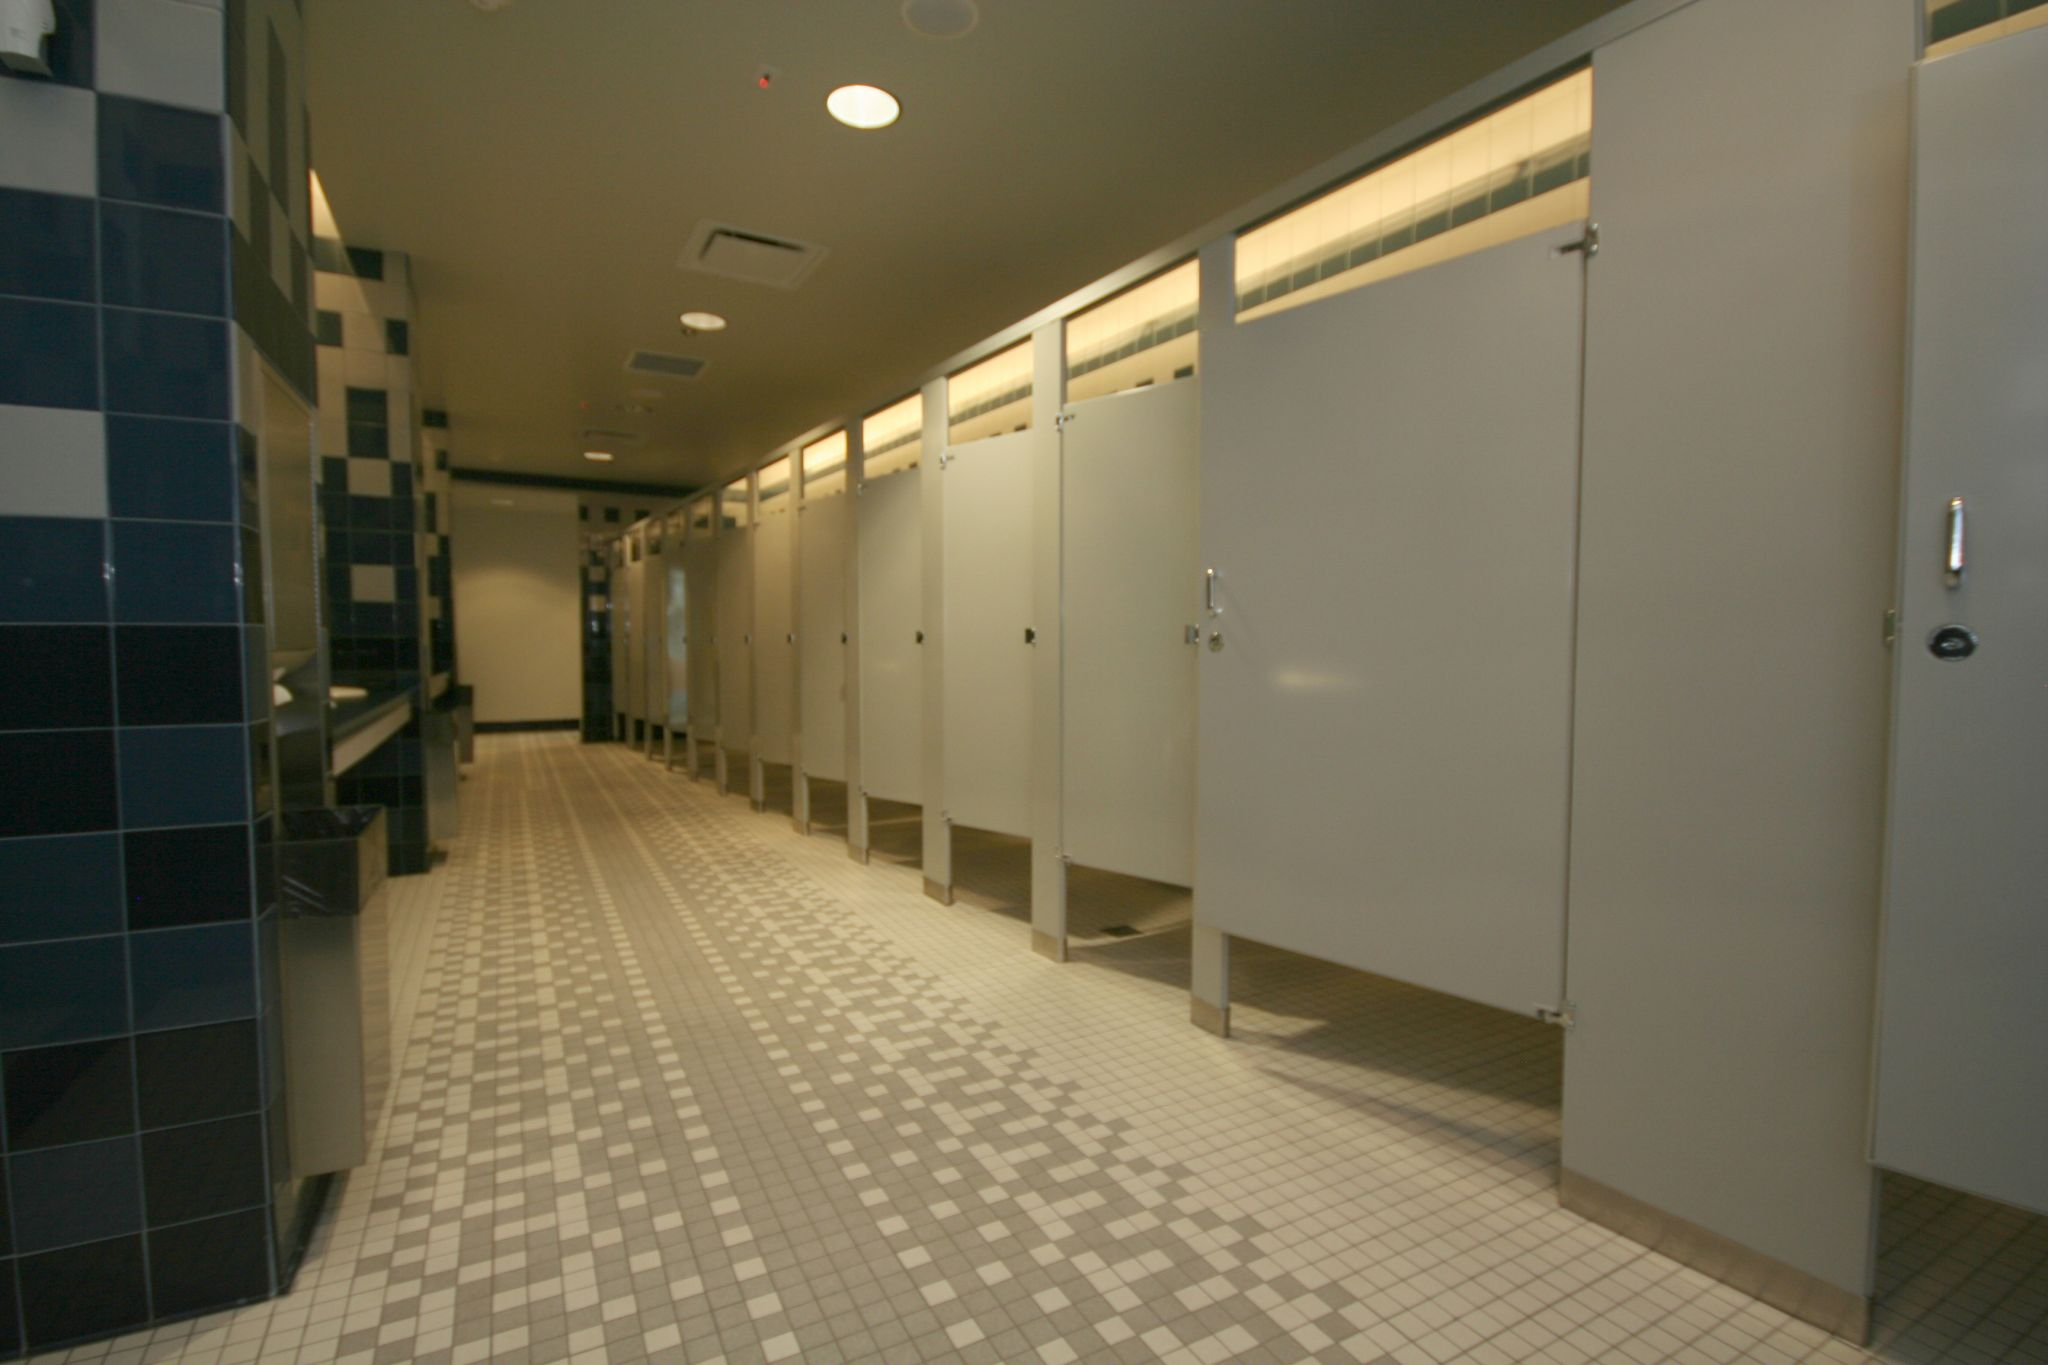 washroom partitions toronto  bathroom partitions nj rukinet, Home decor